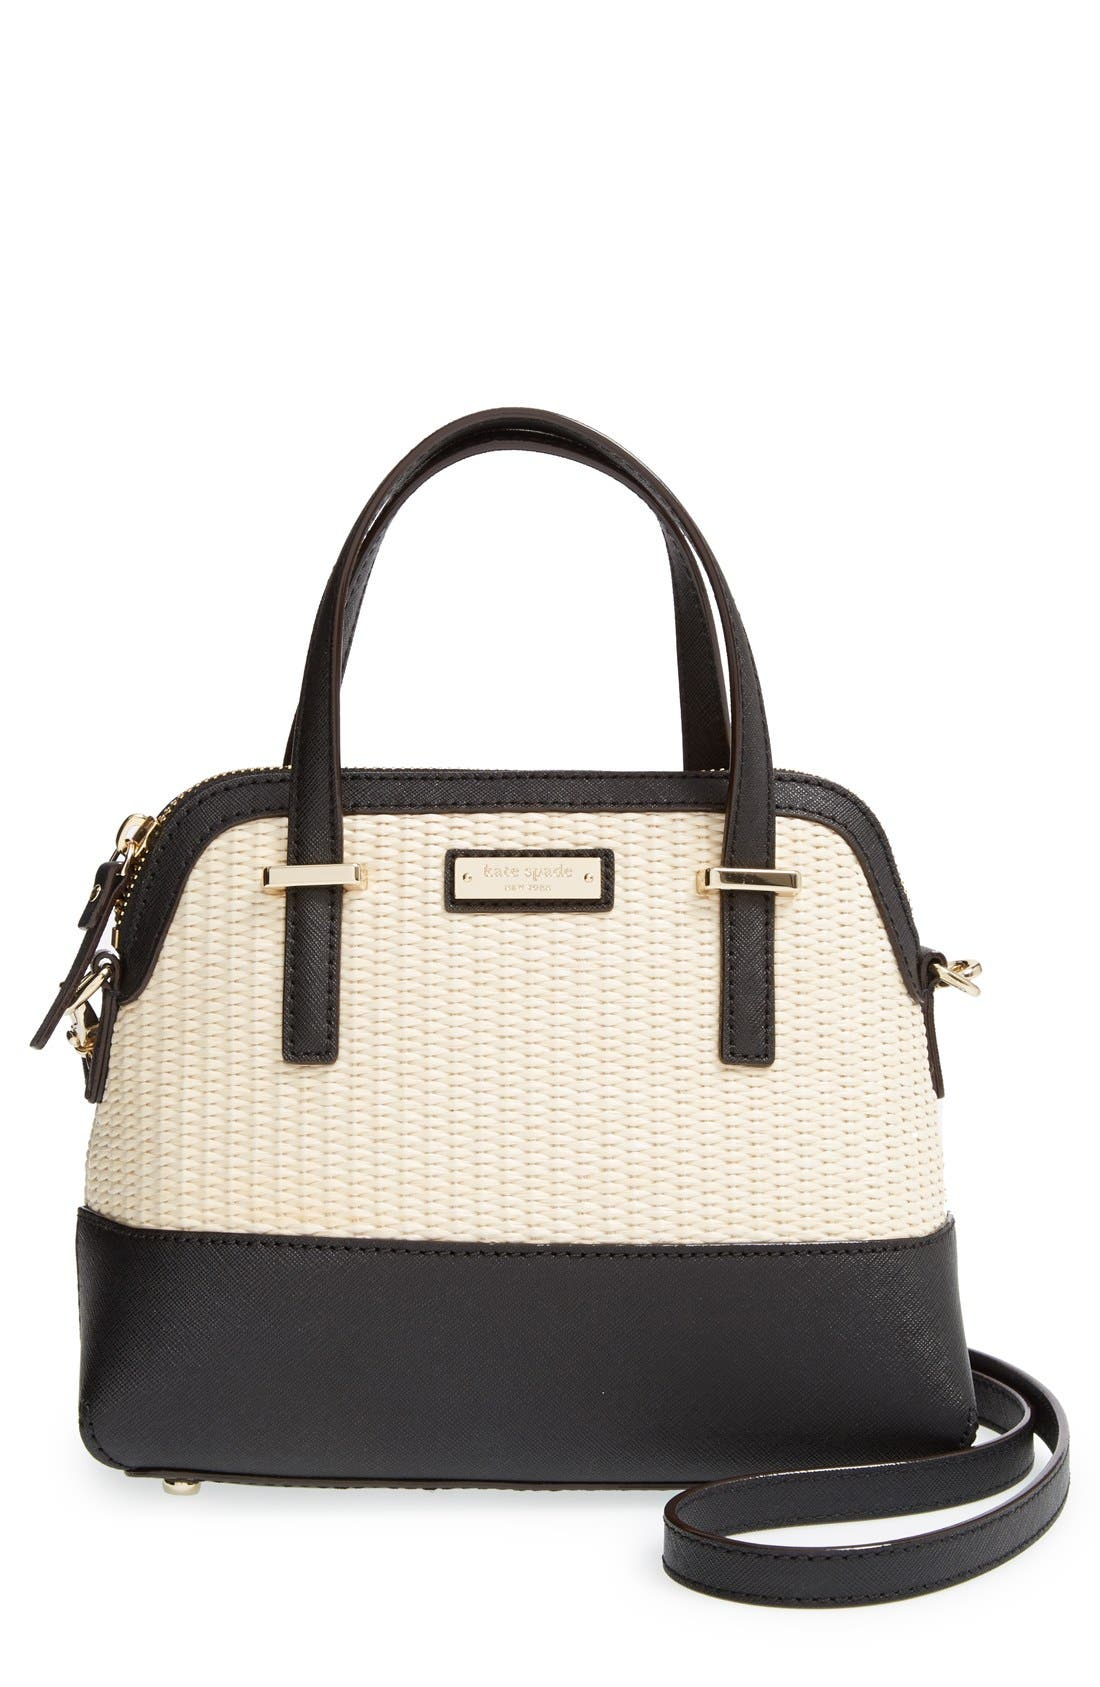 Alternate Image 1 Selected - kate spade new york 'cedar street straw - small maise' satchel